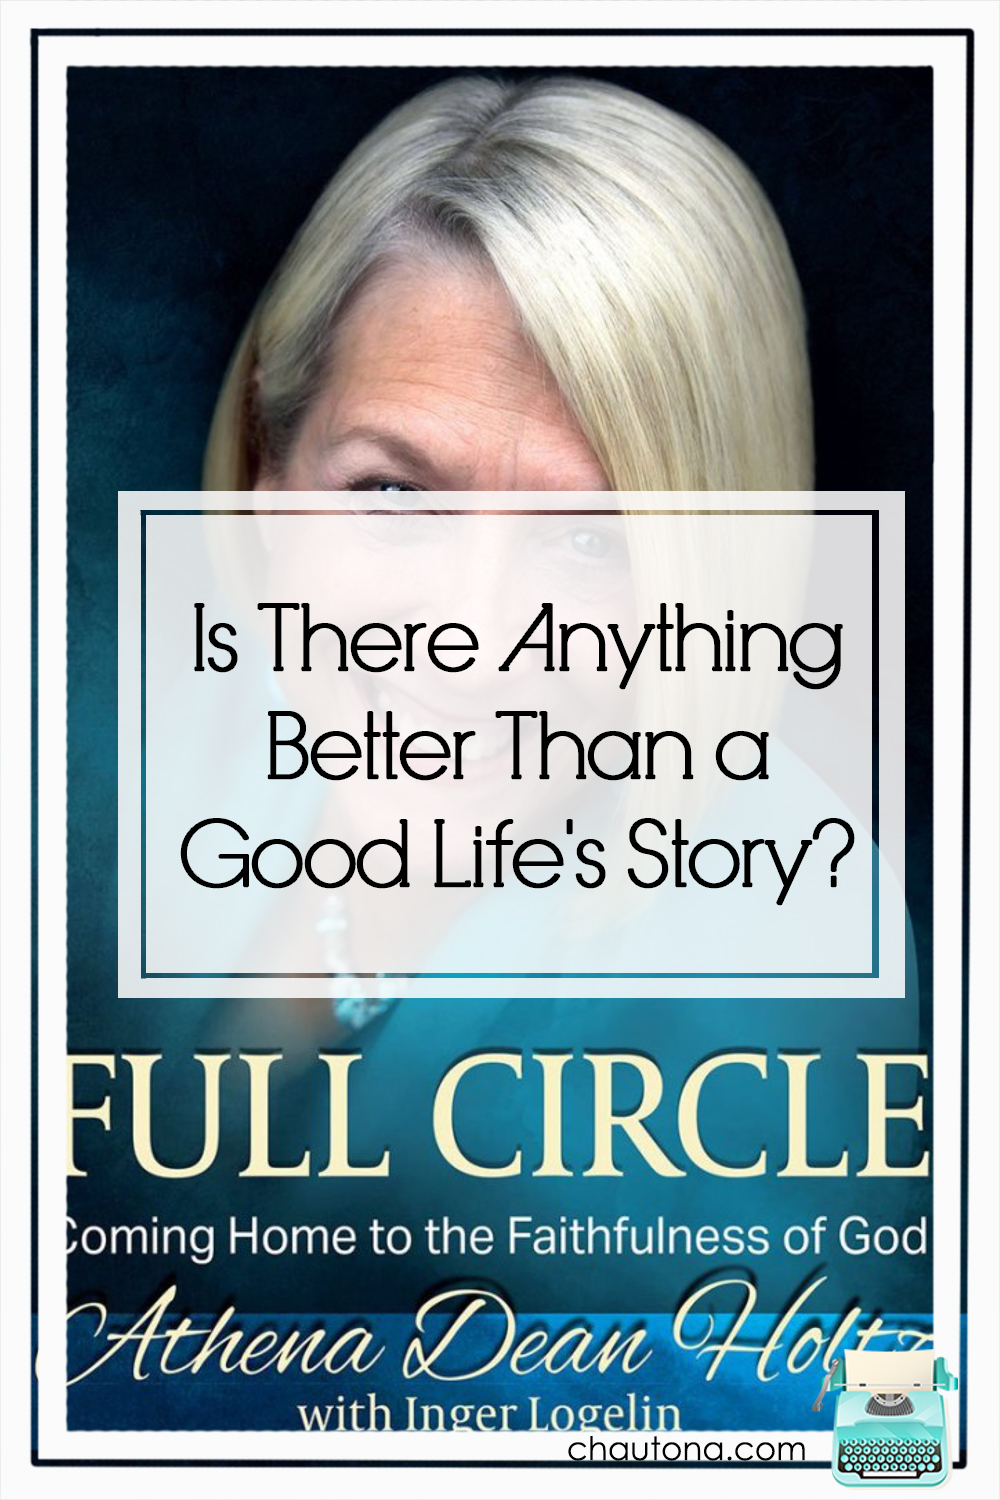 Full Circle by Athena Dean Holtz wasn't what I expected, but no one can deny that God has redeemed His daughter for Himself after reading this book. via @chautonahavig